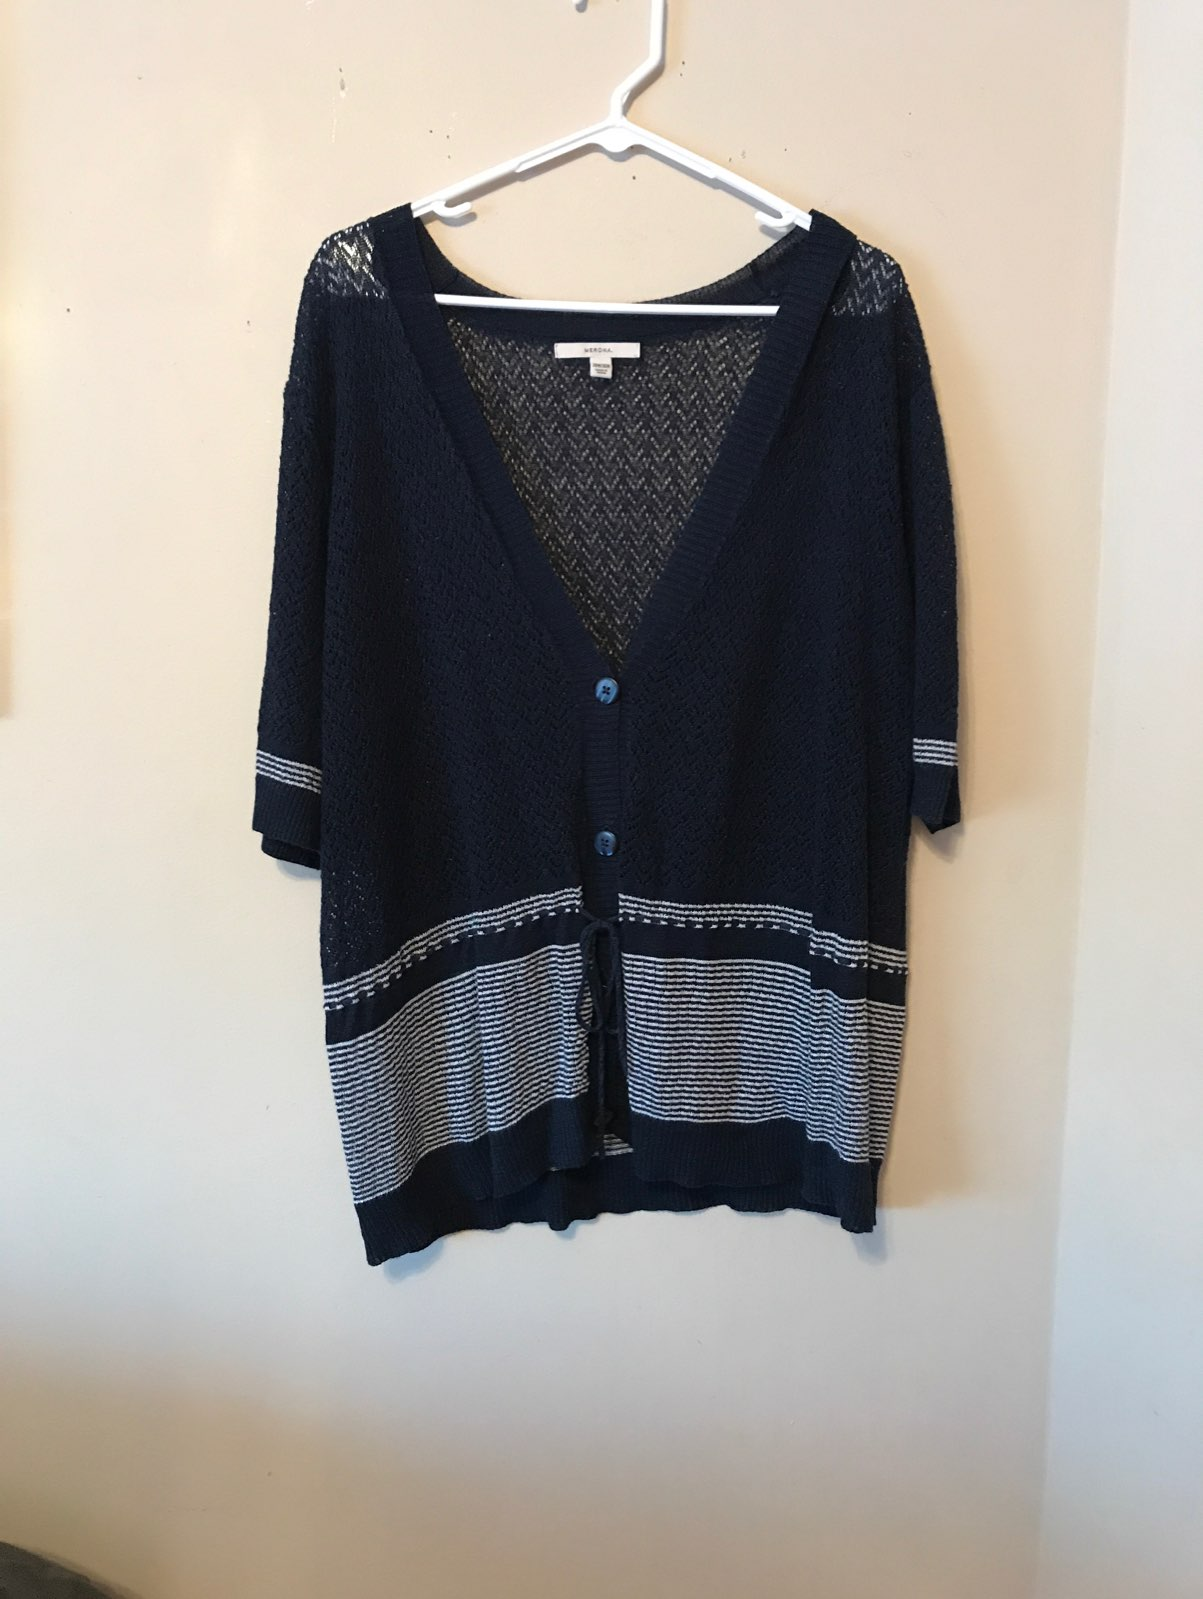 Plus Size Navy Short Sleeve Cardigan - Mercari: BUY & SELL THINGS ...